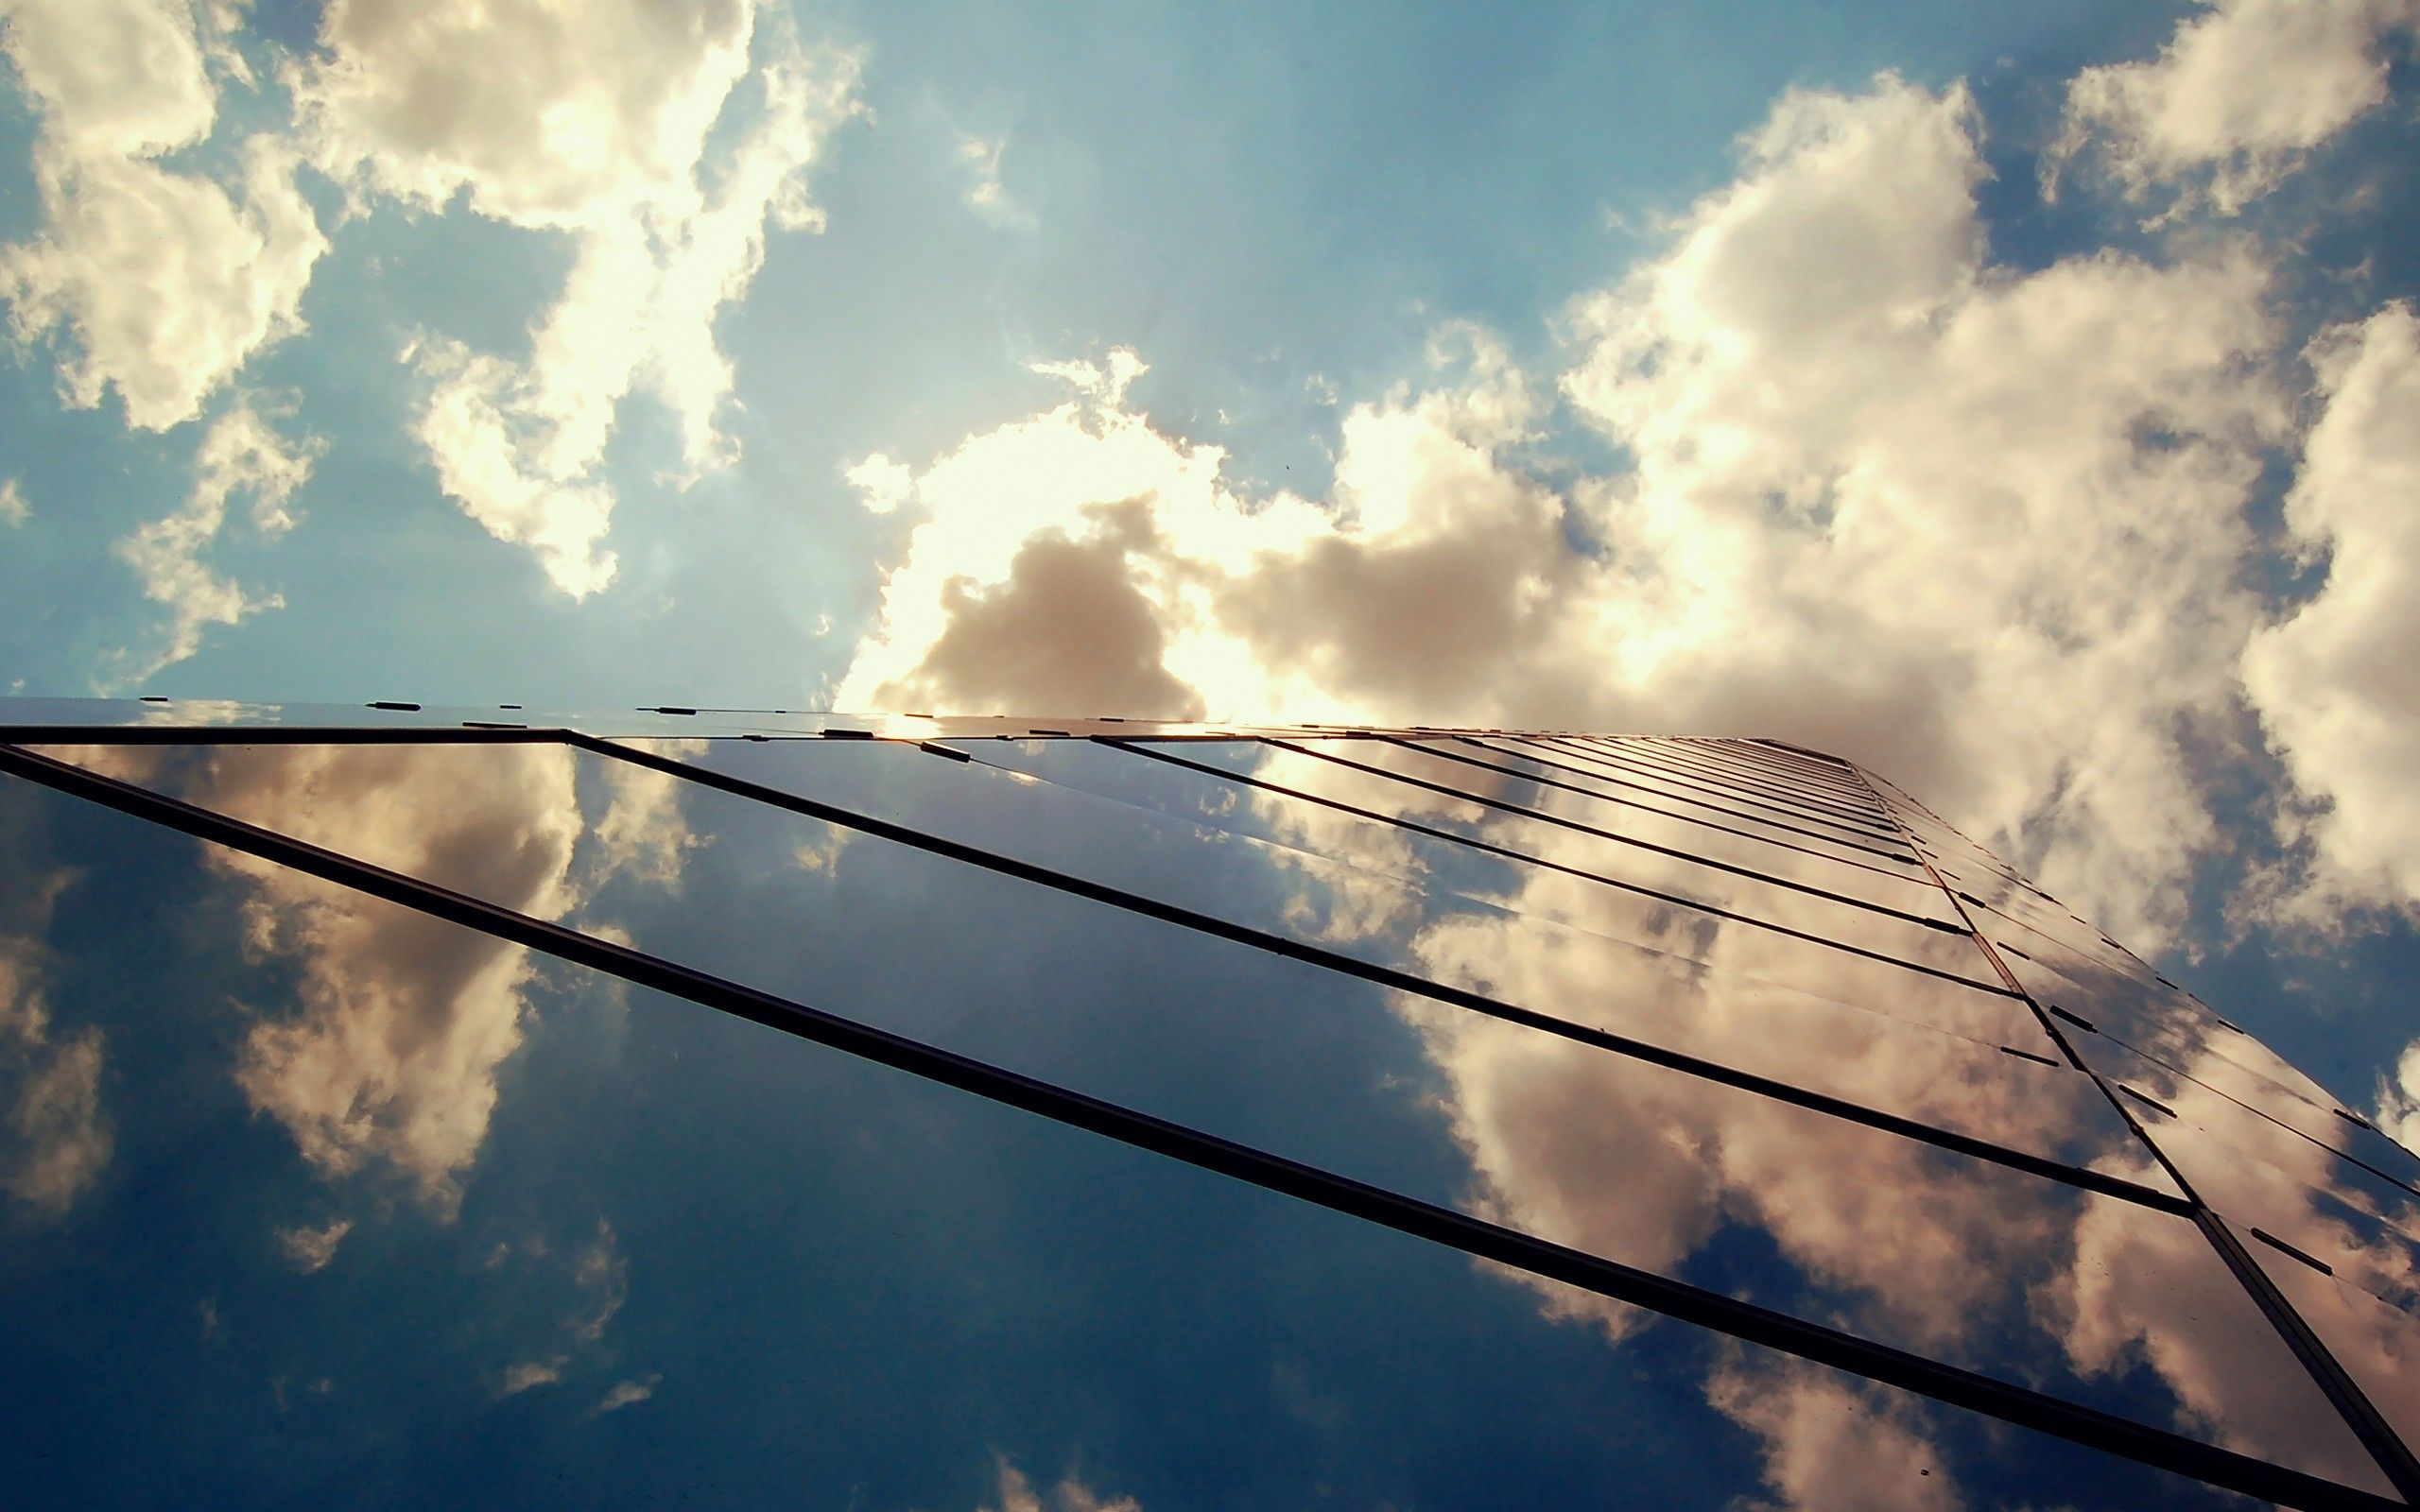 clouds-reflecting-in-glass-building-world-hd-wallpaper-2560x1600-9152